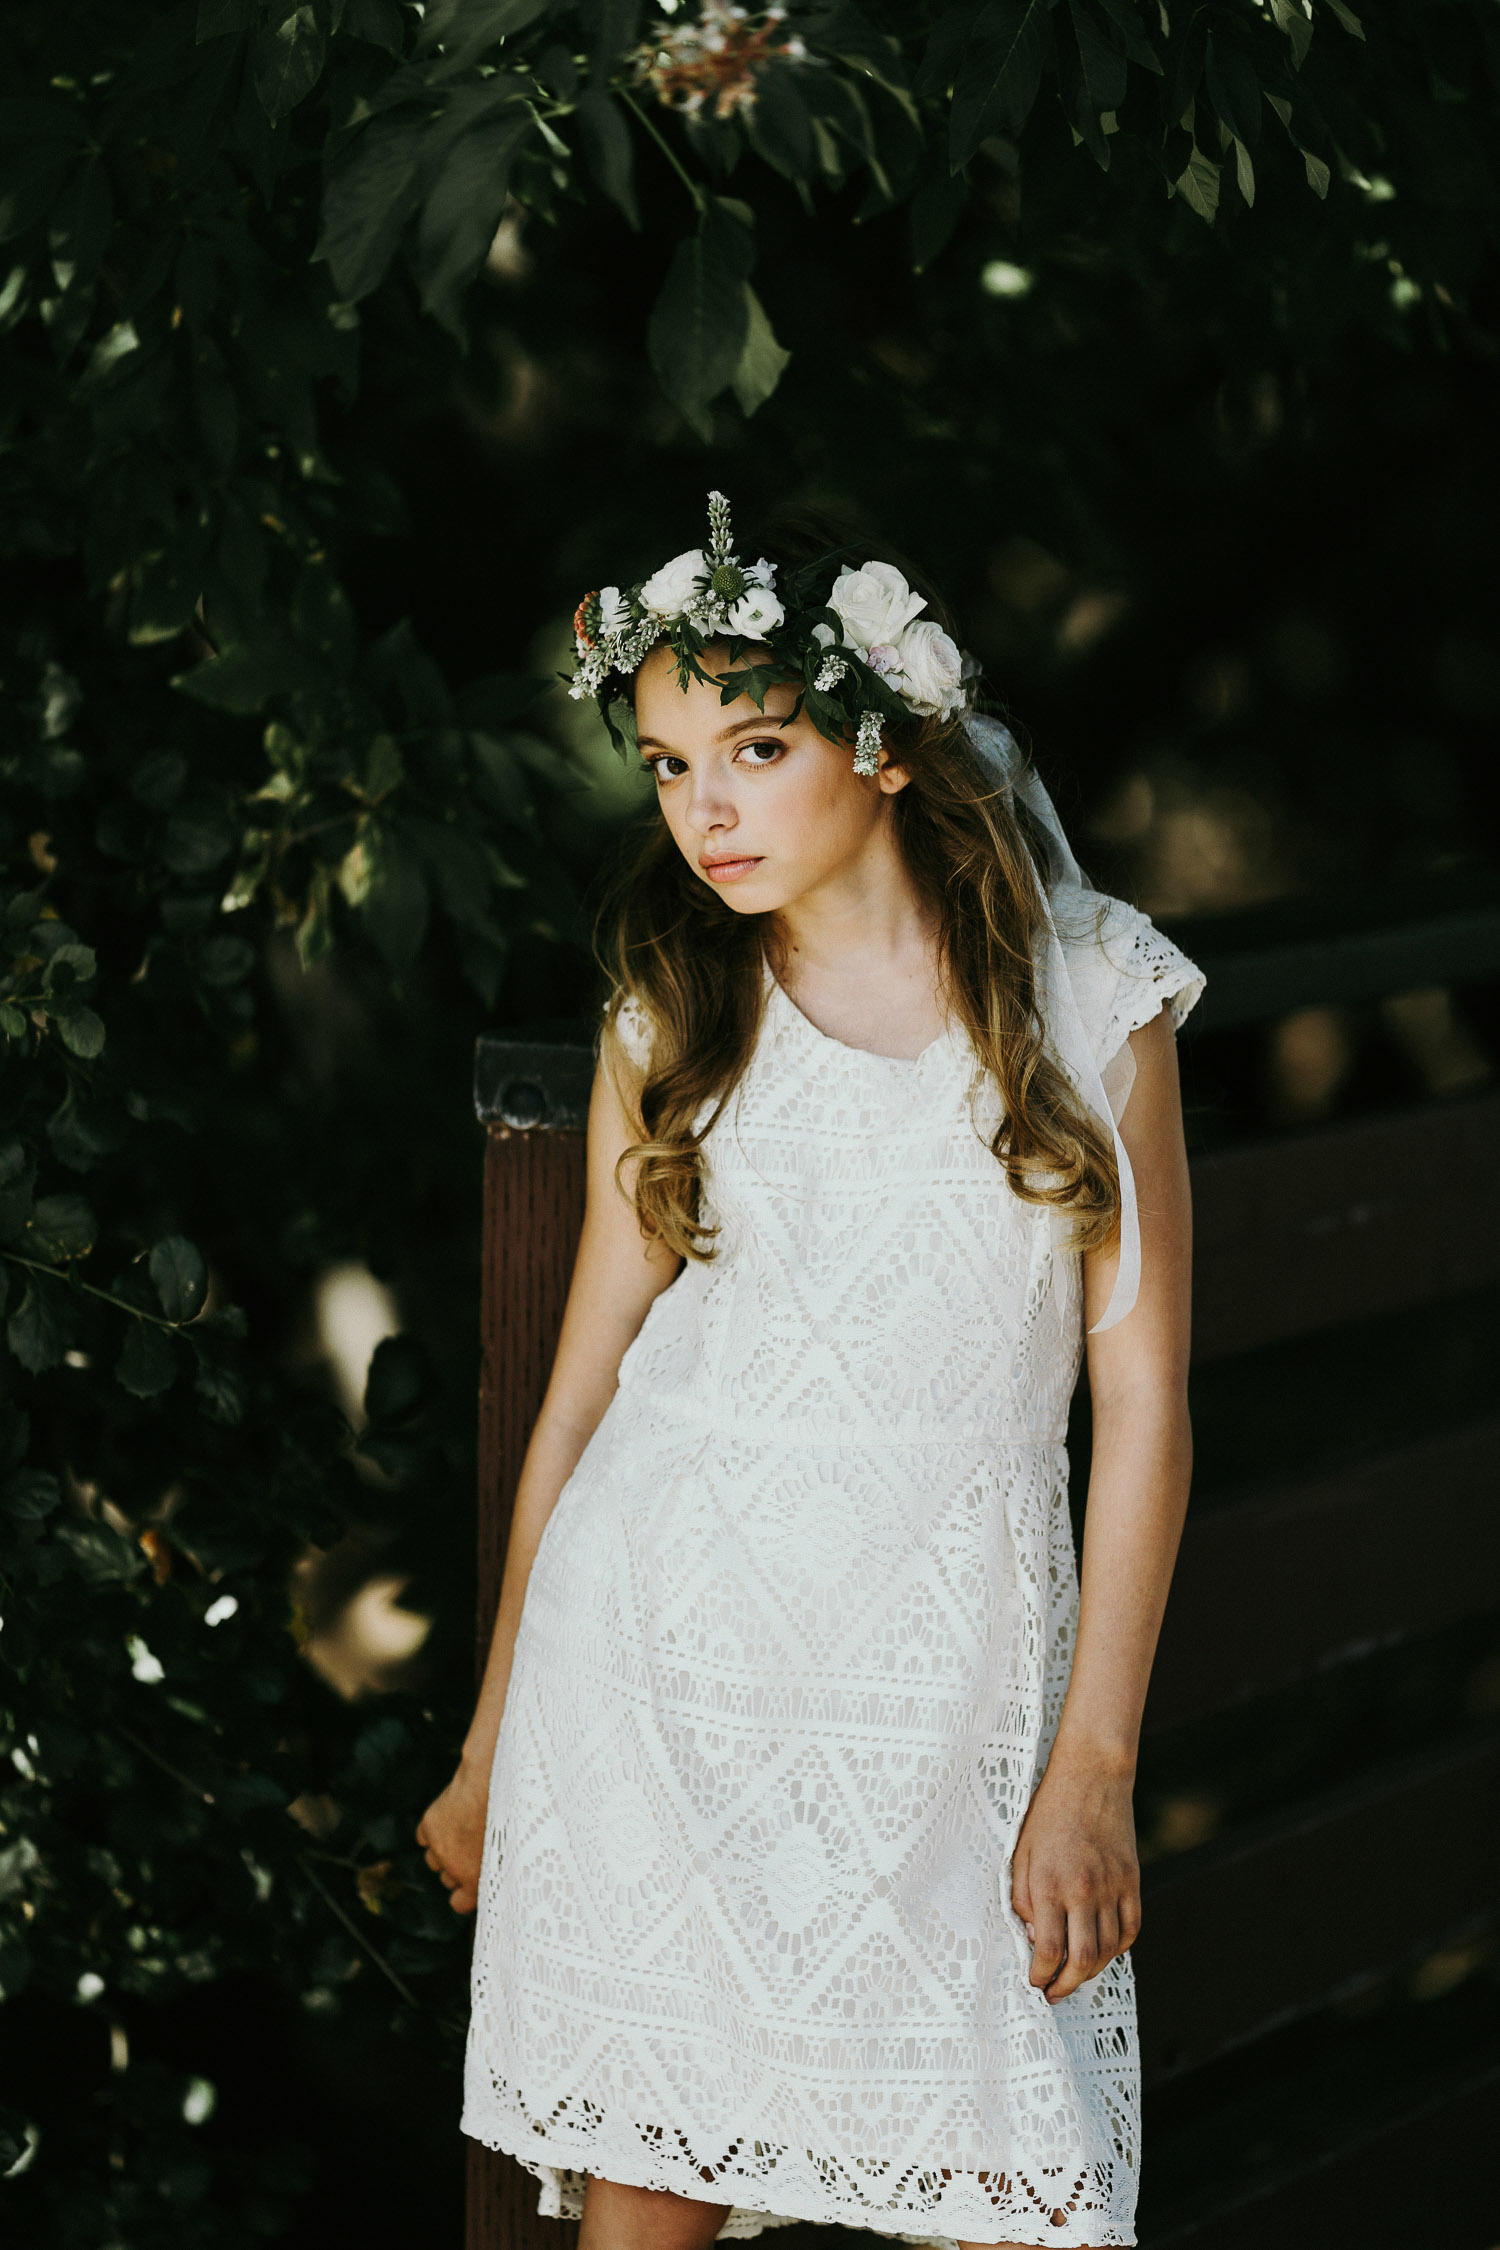 Image of a white dress girl standing in the tree shadow